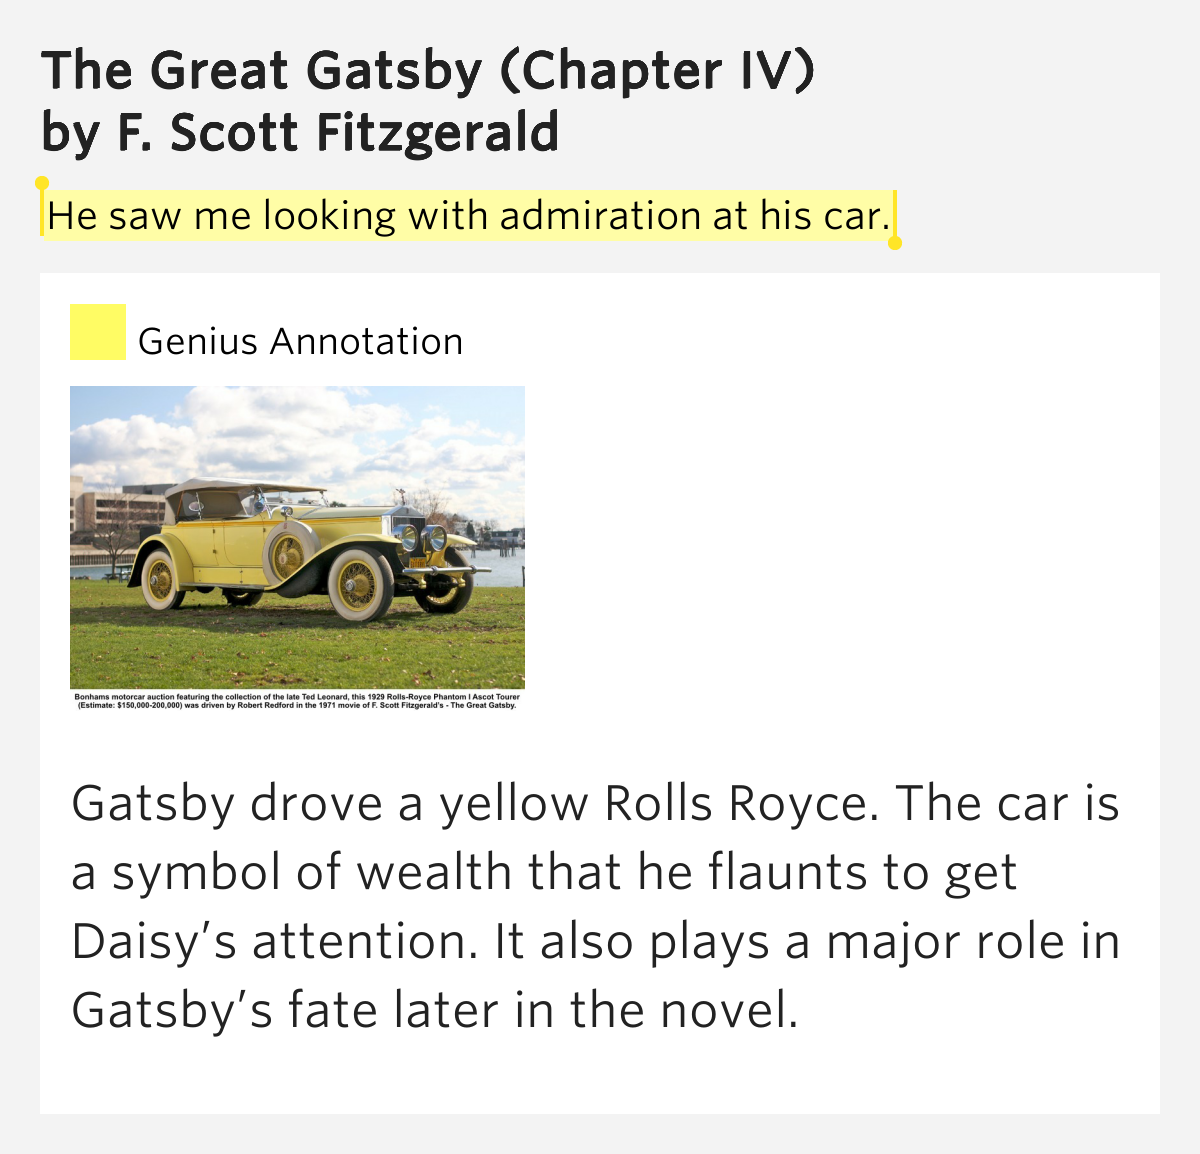 the effects of power in the great gatsby a novel by f scott fitzgerald The great gatsby is a novel by american author f scott fitzgerald the book takes place from spring to autumn 1922, during a prosperous time in the united states known as the roaring twenties.